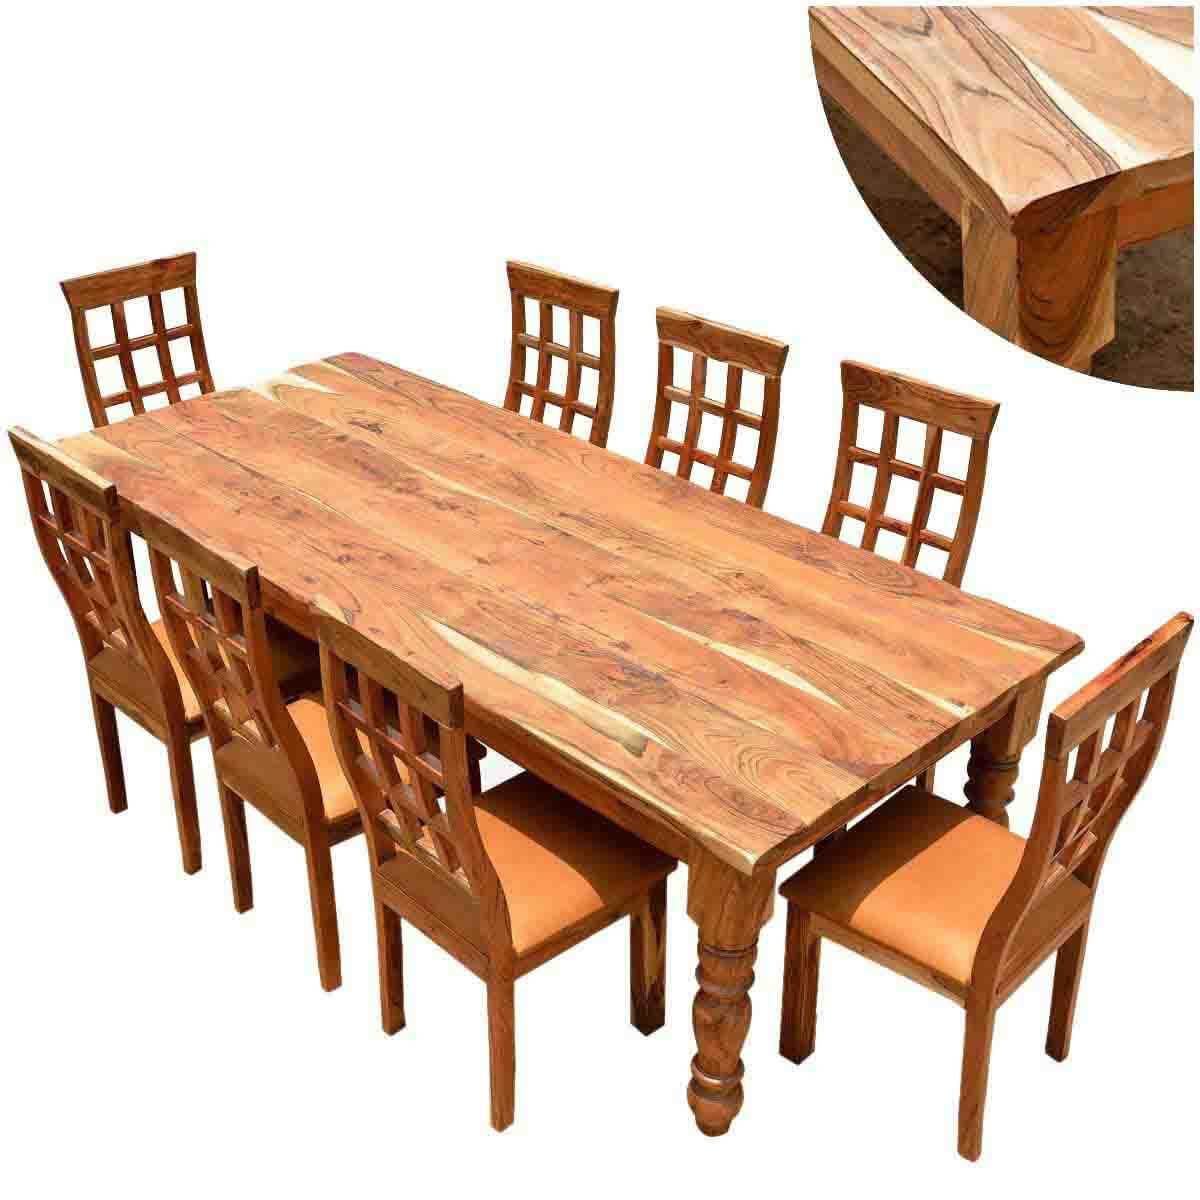 dining table and chair sets solid wood kitchen tables Rustic Furniture Farmhouse Solid Wood Dining Table Chair Set